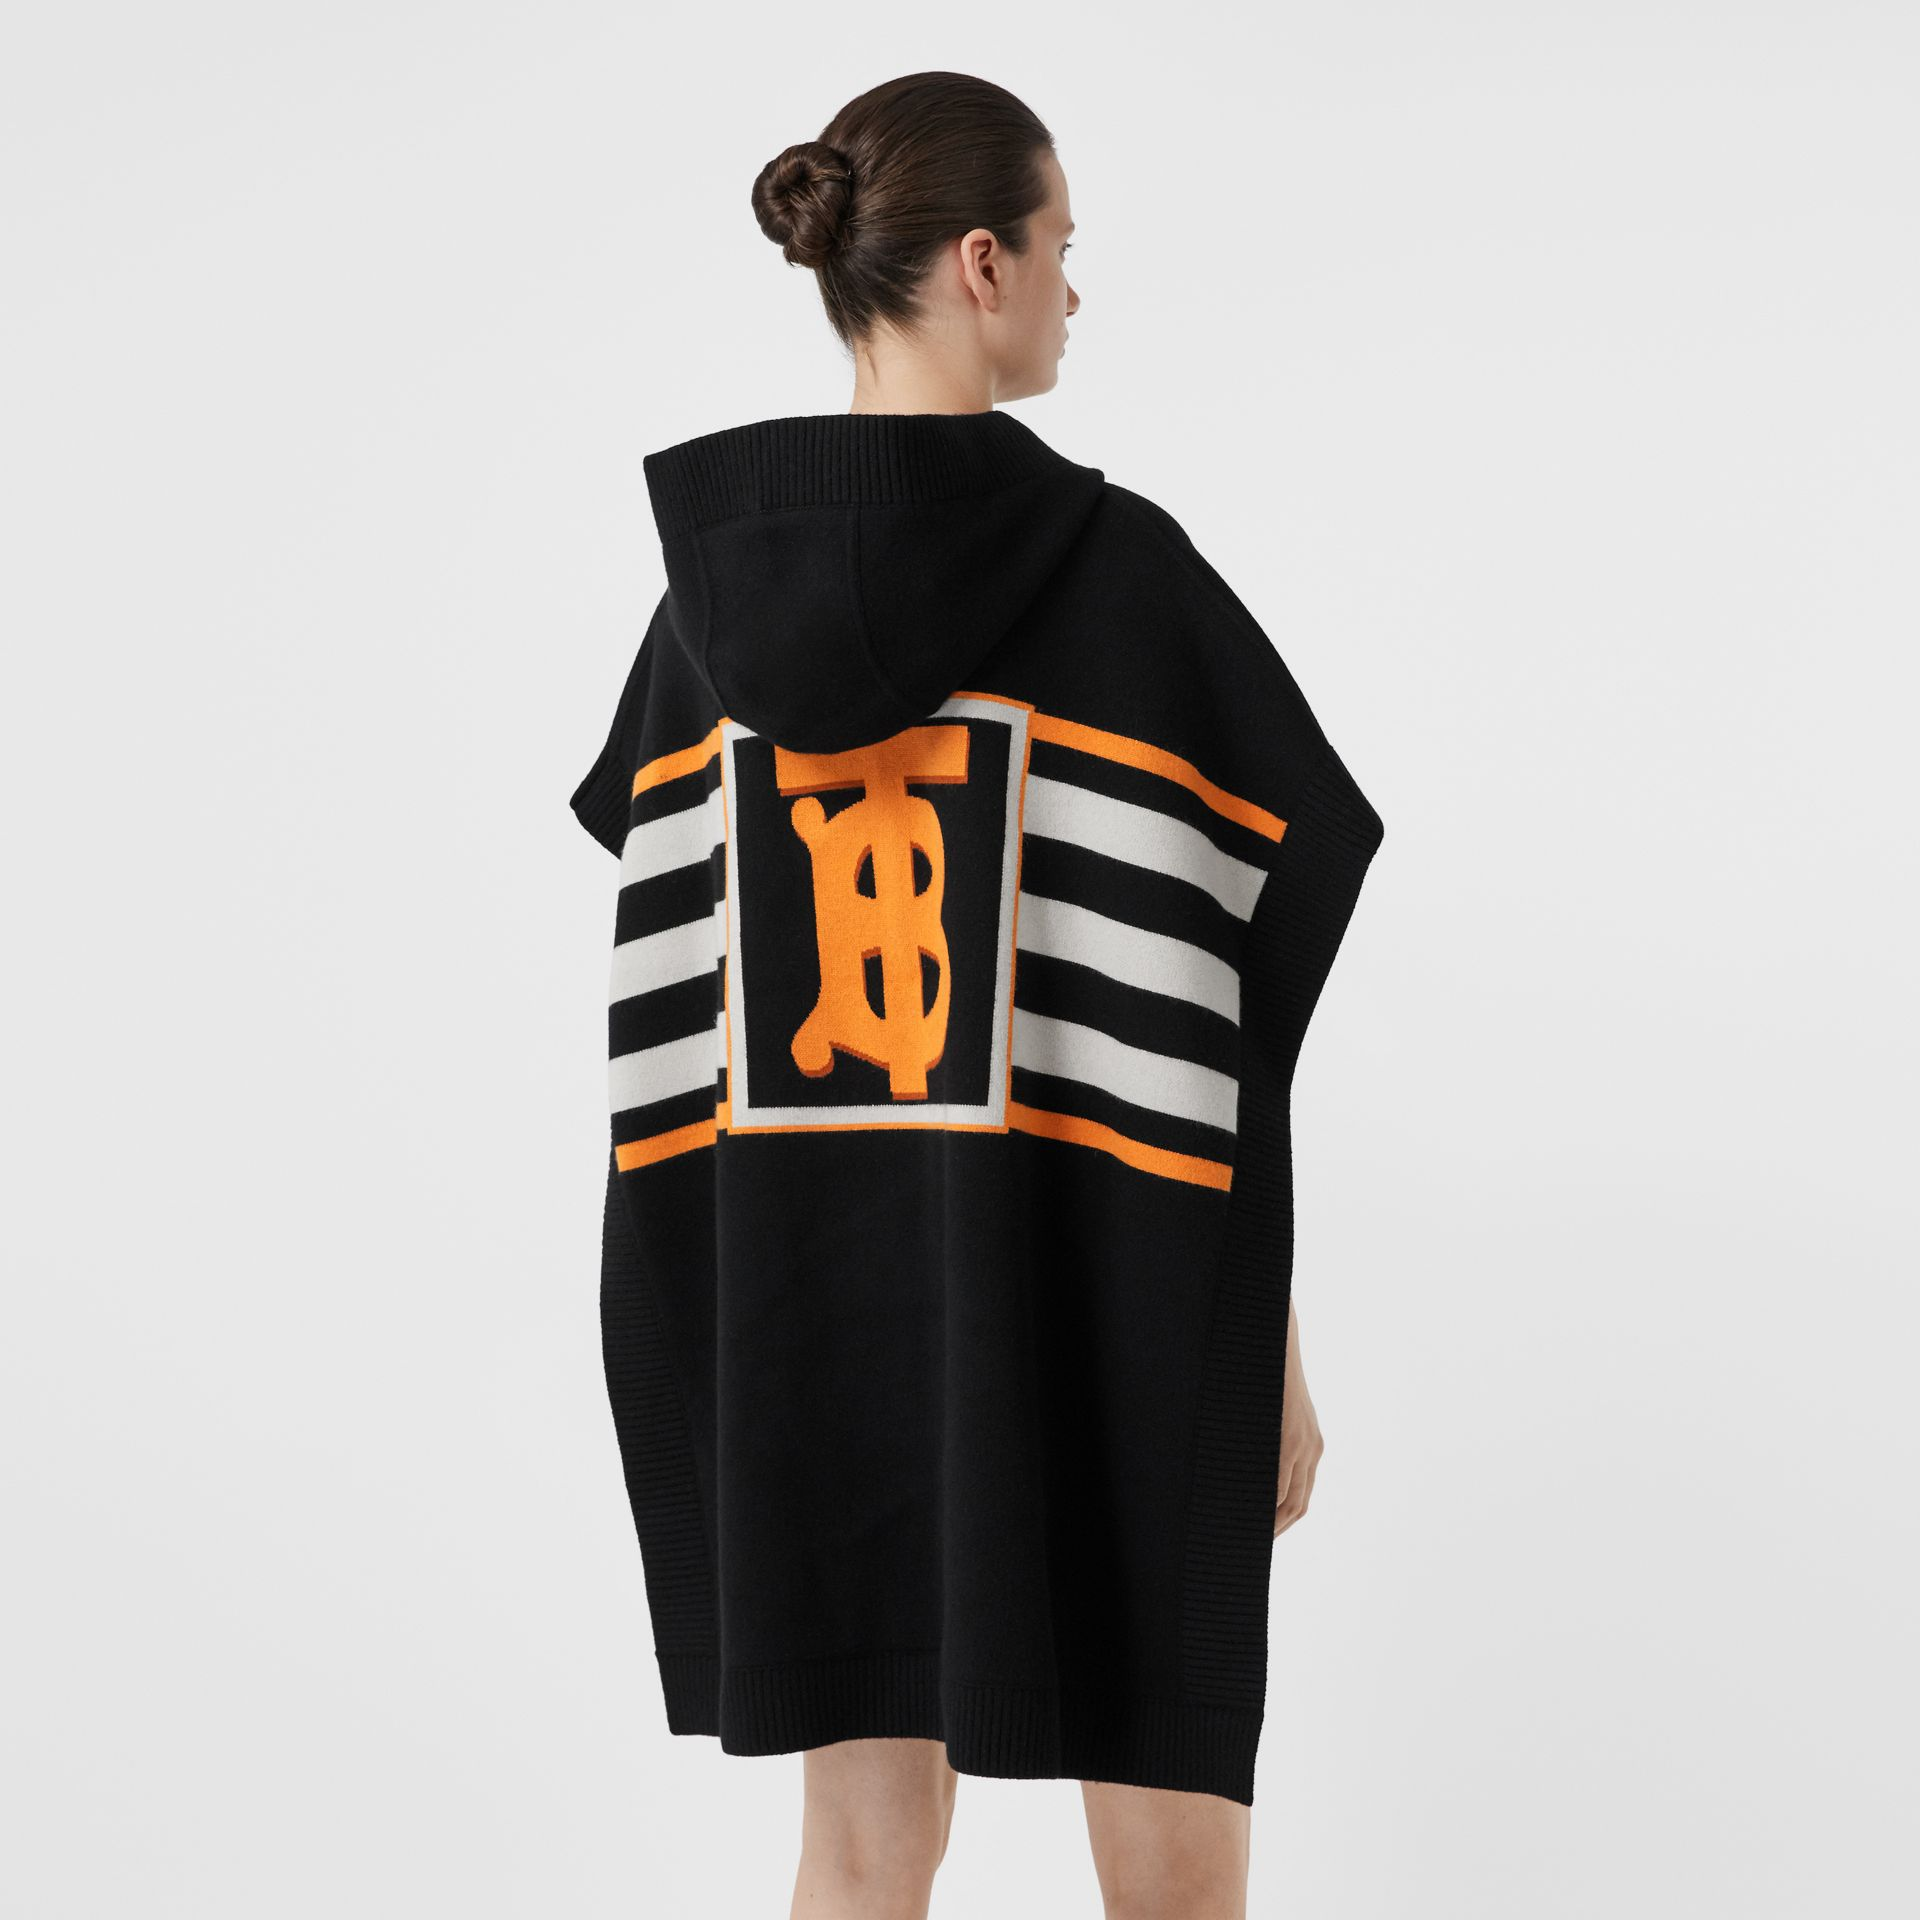 Monogram Motif Intarsia Wool Cashmere Blend Cape in Black - Women | Burberry Hong Kong S.A.R - gallery image 2